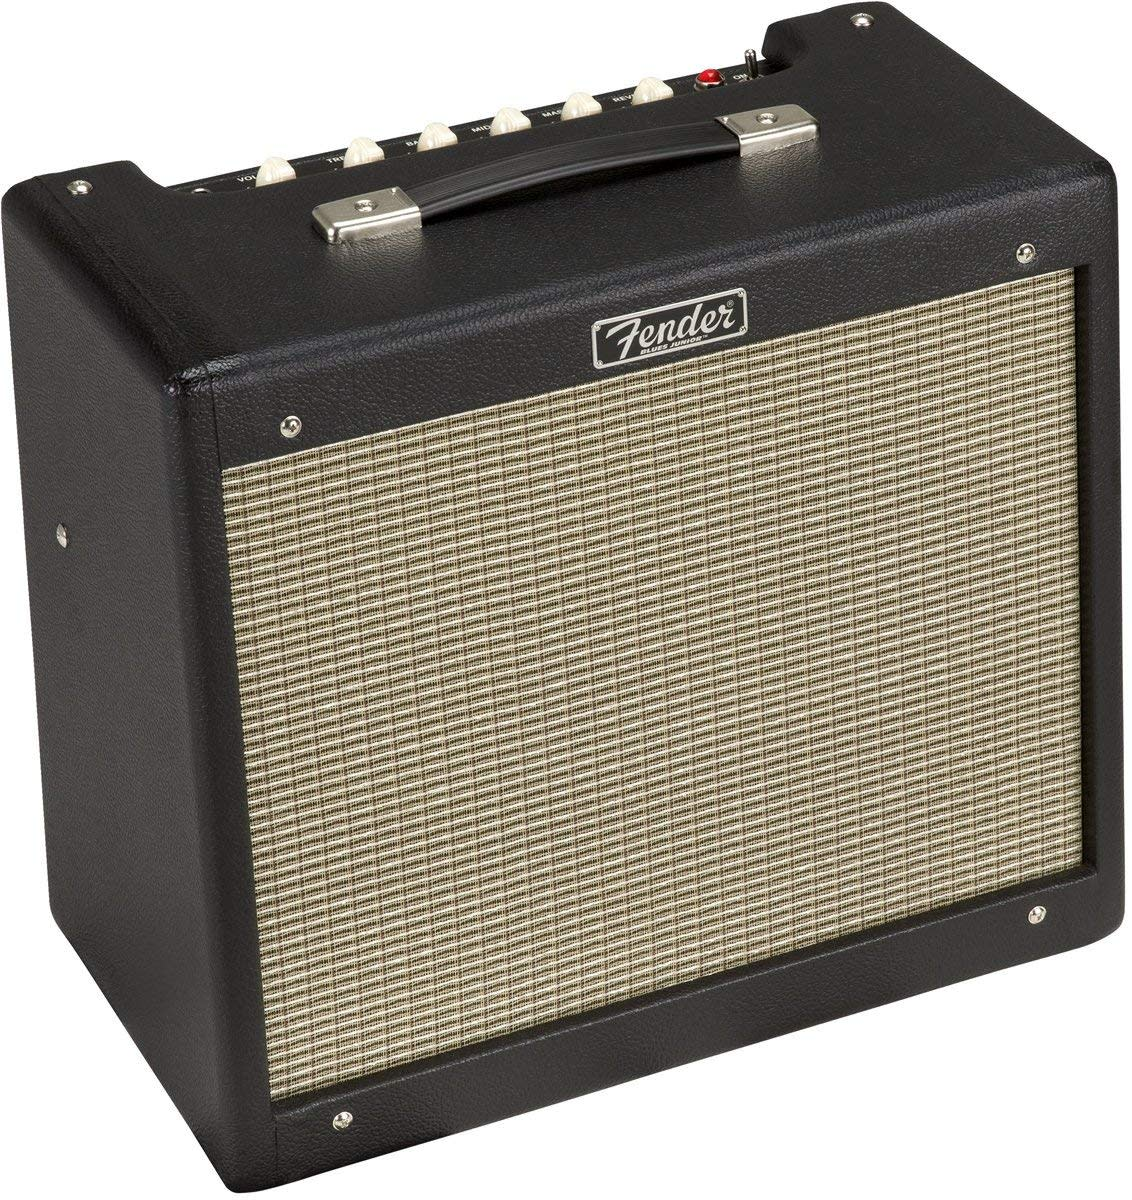 Best Small Tube Amp Combos and Heads for Home Use